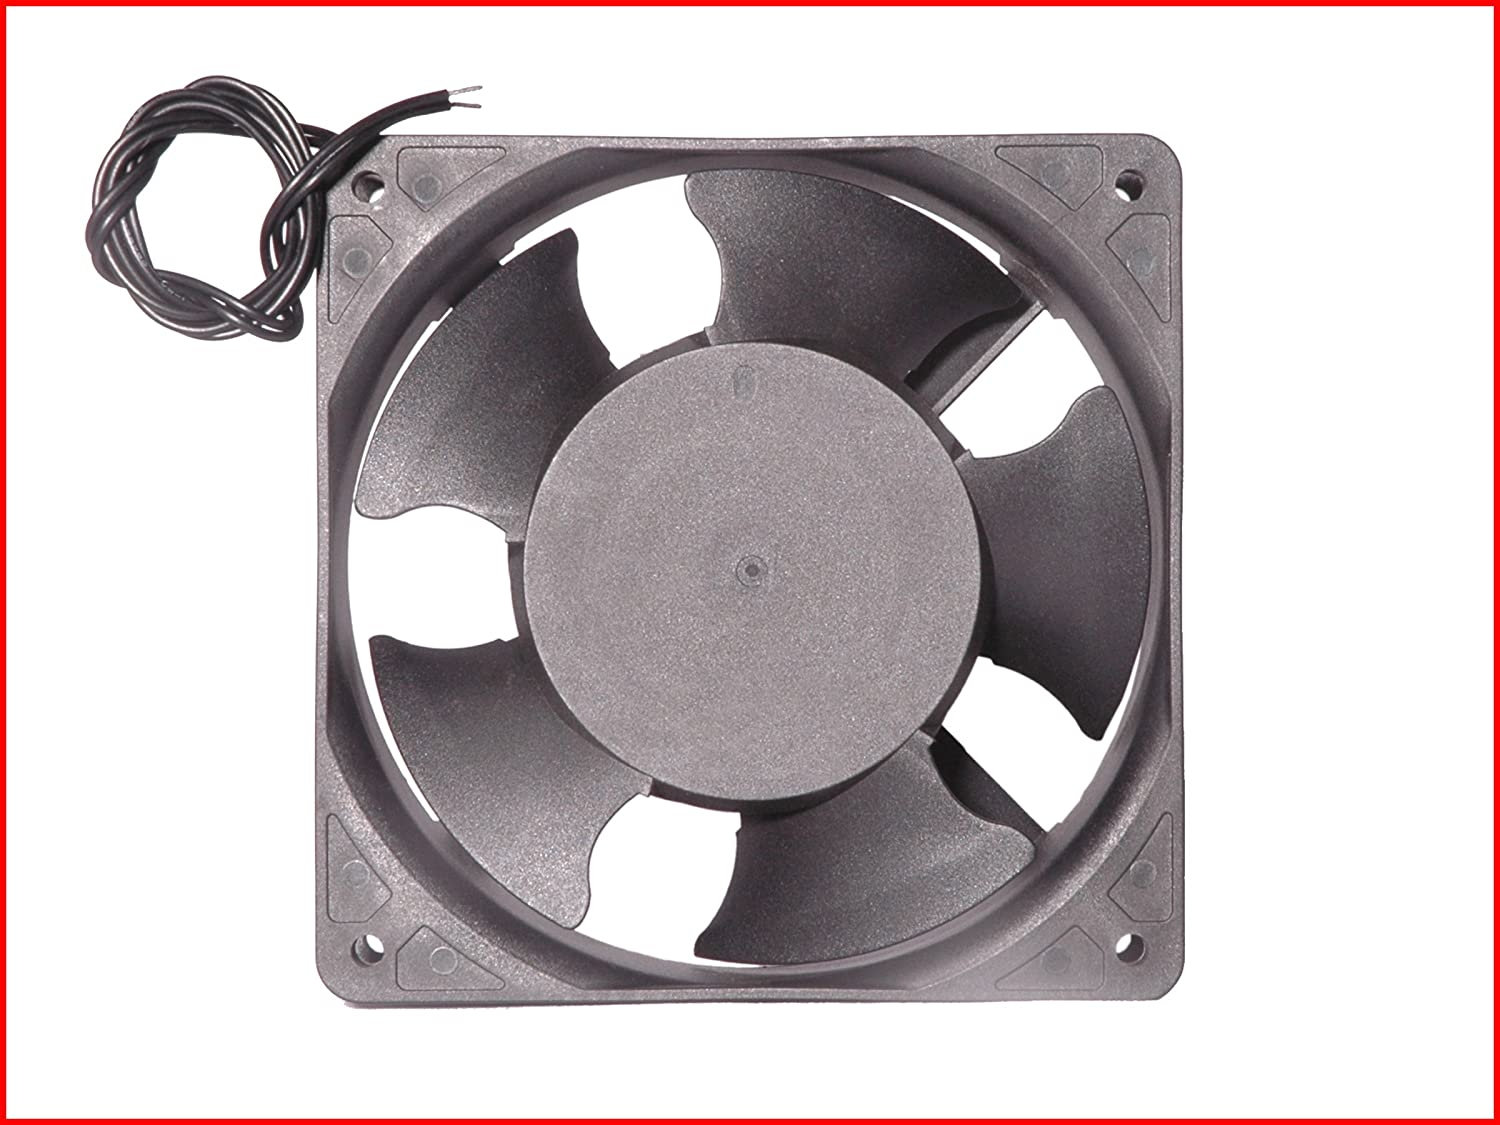 MAA-KU EC Exhaust Fan for Extra Small Kitchen, Size : 4.75 inches ...